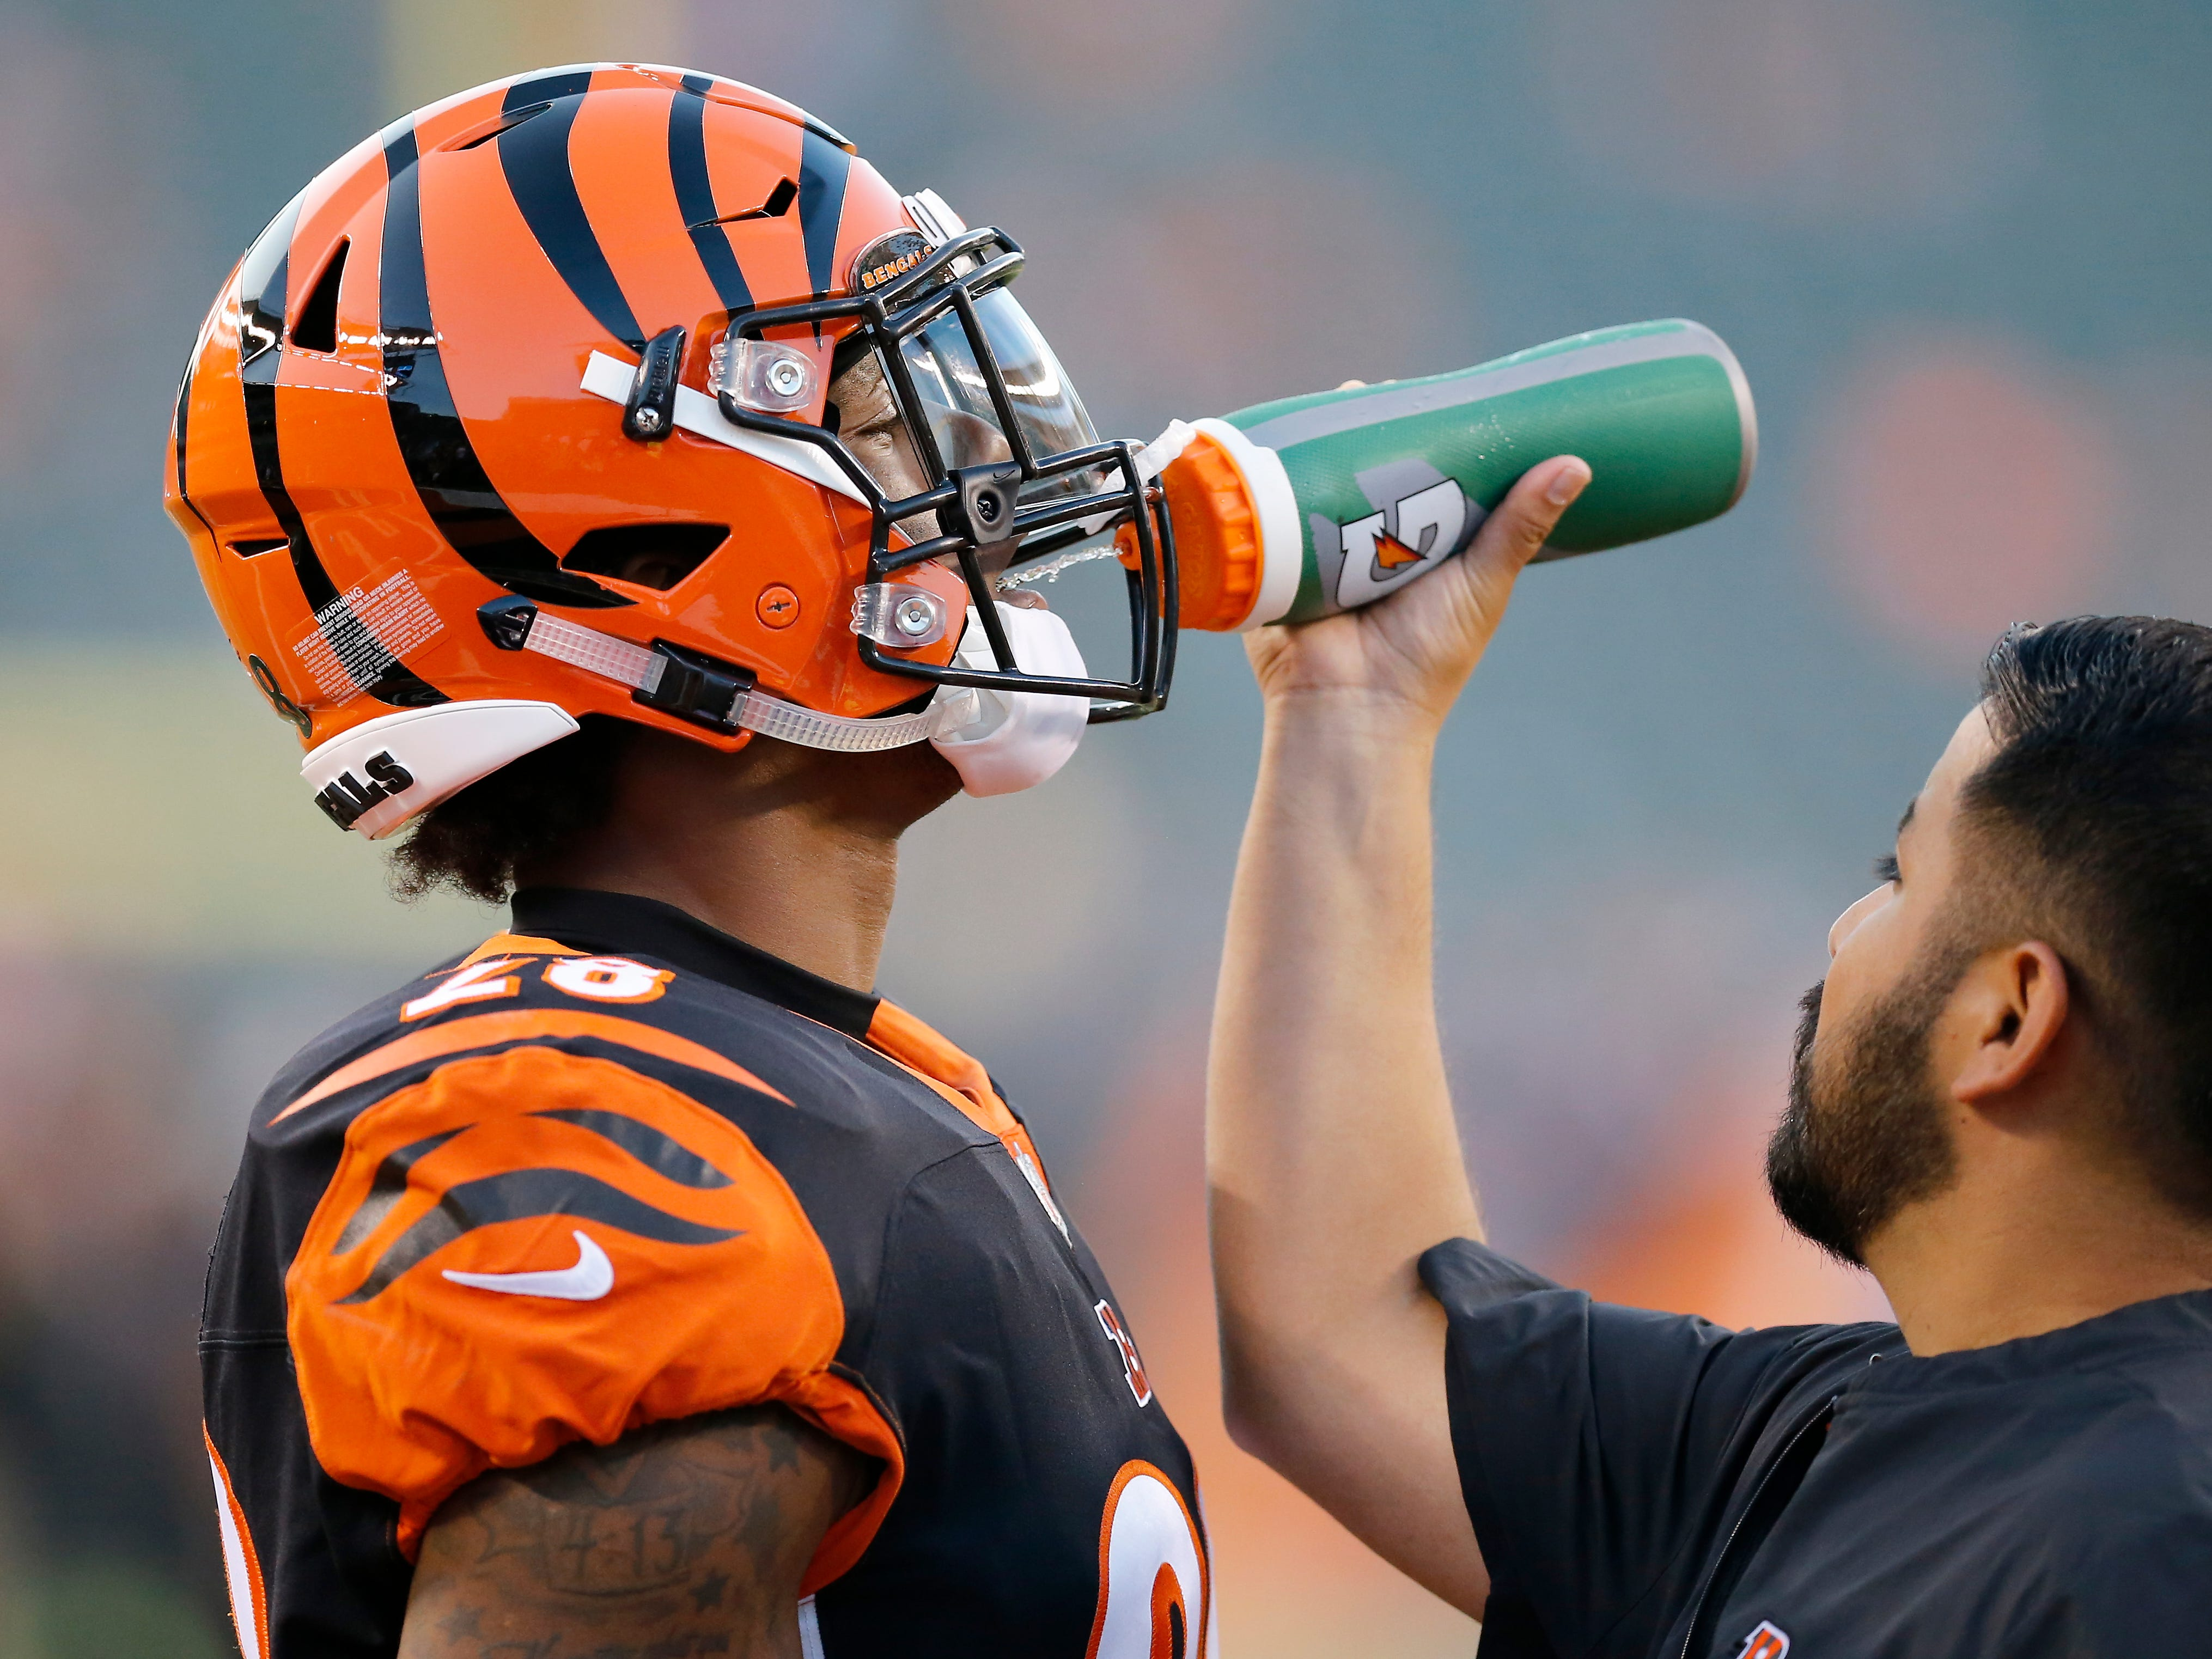 Cincinnati Bengals running back Joe Mixon (28) gets a drink during pregame warmup before the NFL Week 2 game between the Cincinnati Bengals and the Baltimore Ravens at Paul Brown Stadium in downtown Cincinnati on Thursday, Sept. 13, 2018.